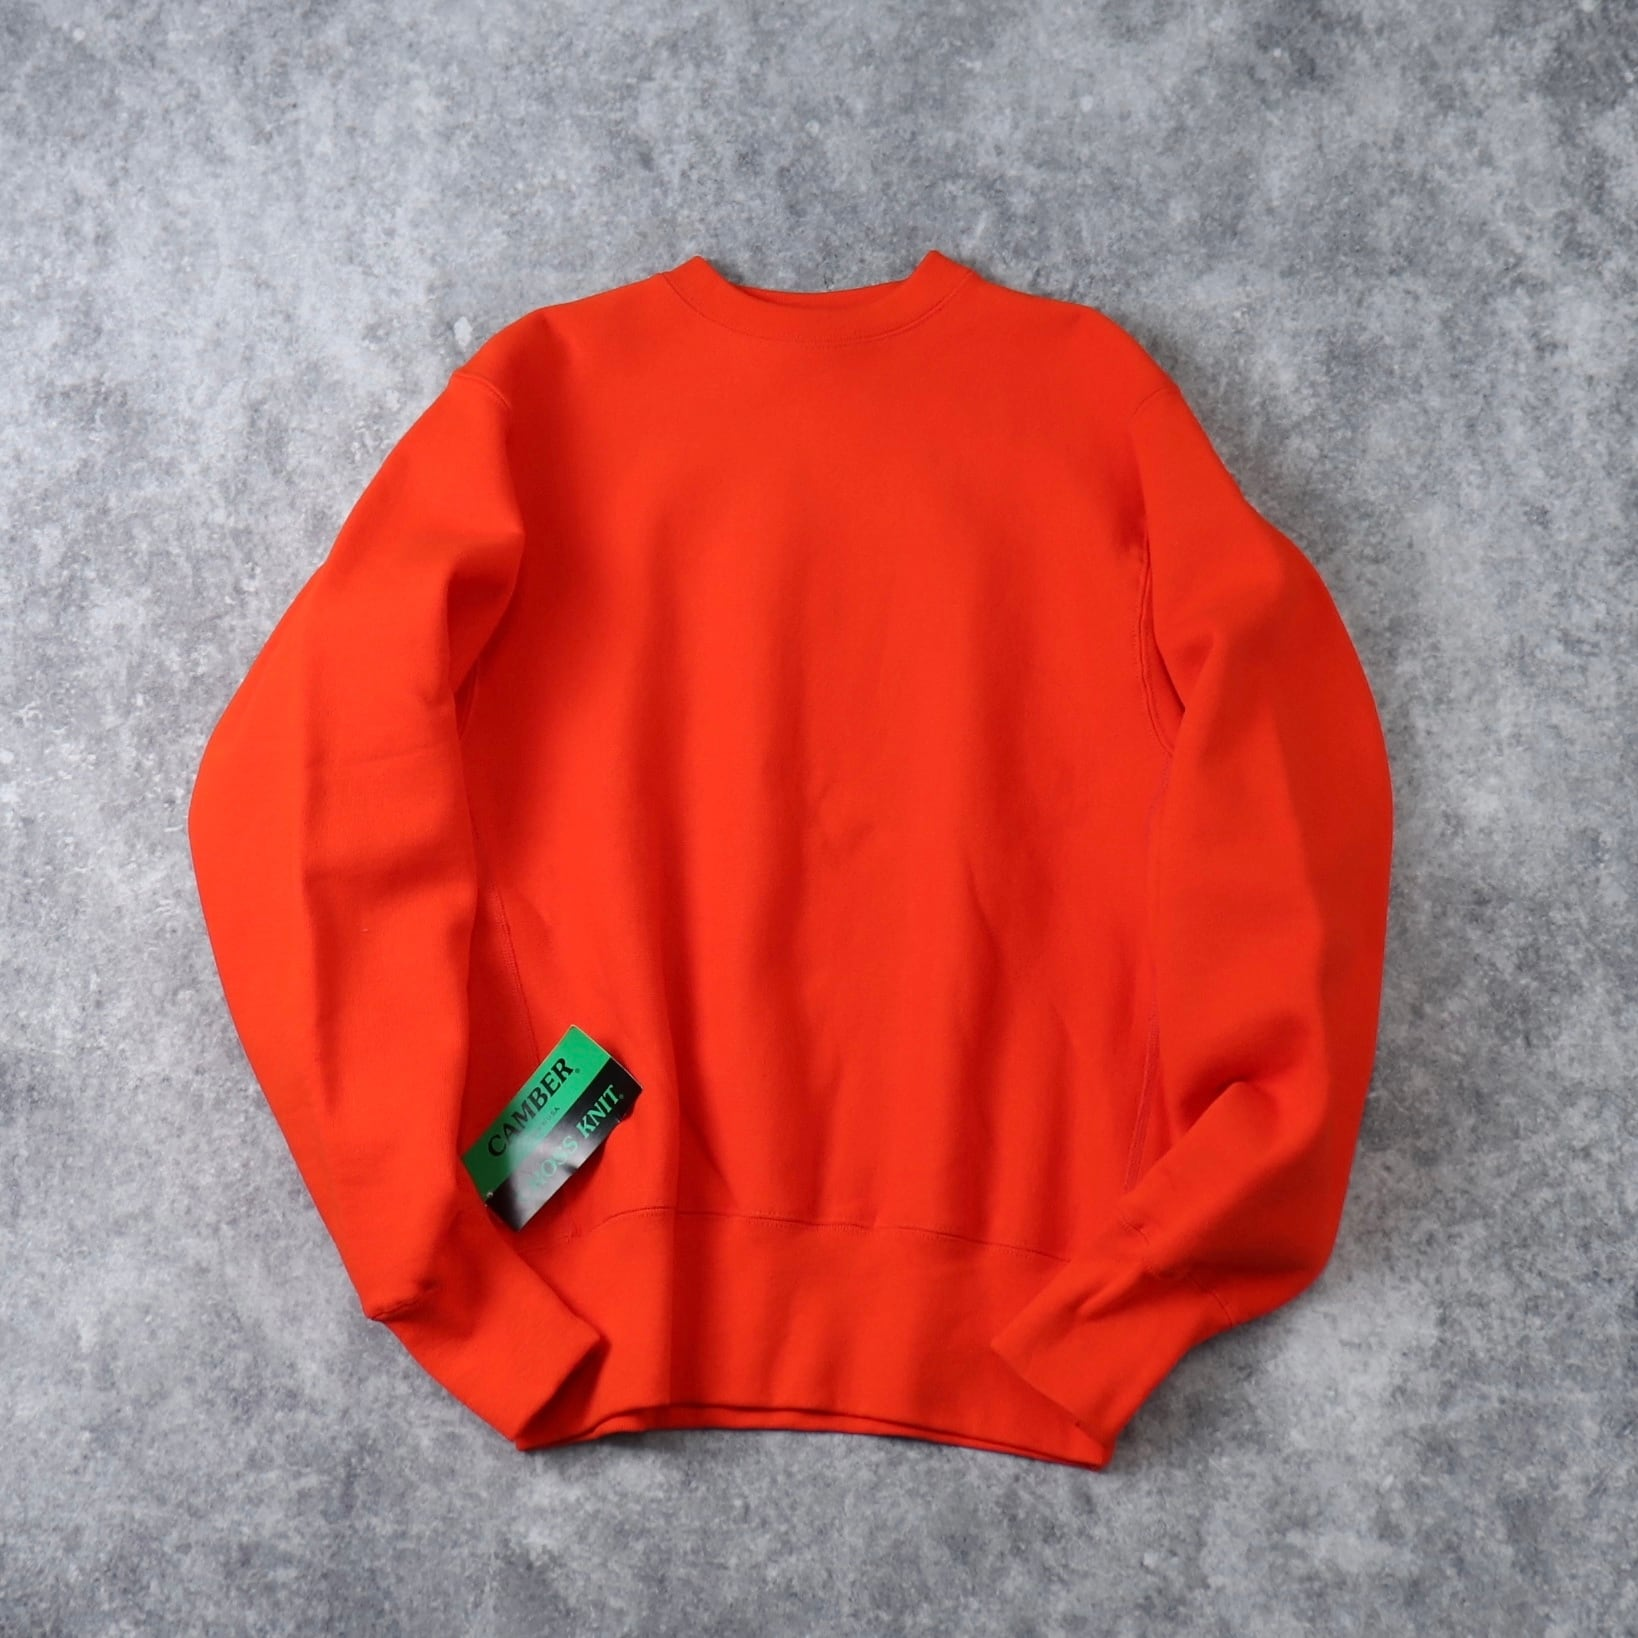 """"""" CAMBER """"  Sweatshirts  Cross Knit  Made in USA   キャンバー スウェット 裏起毛 アメリカ製 新品 A638"""